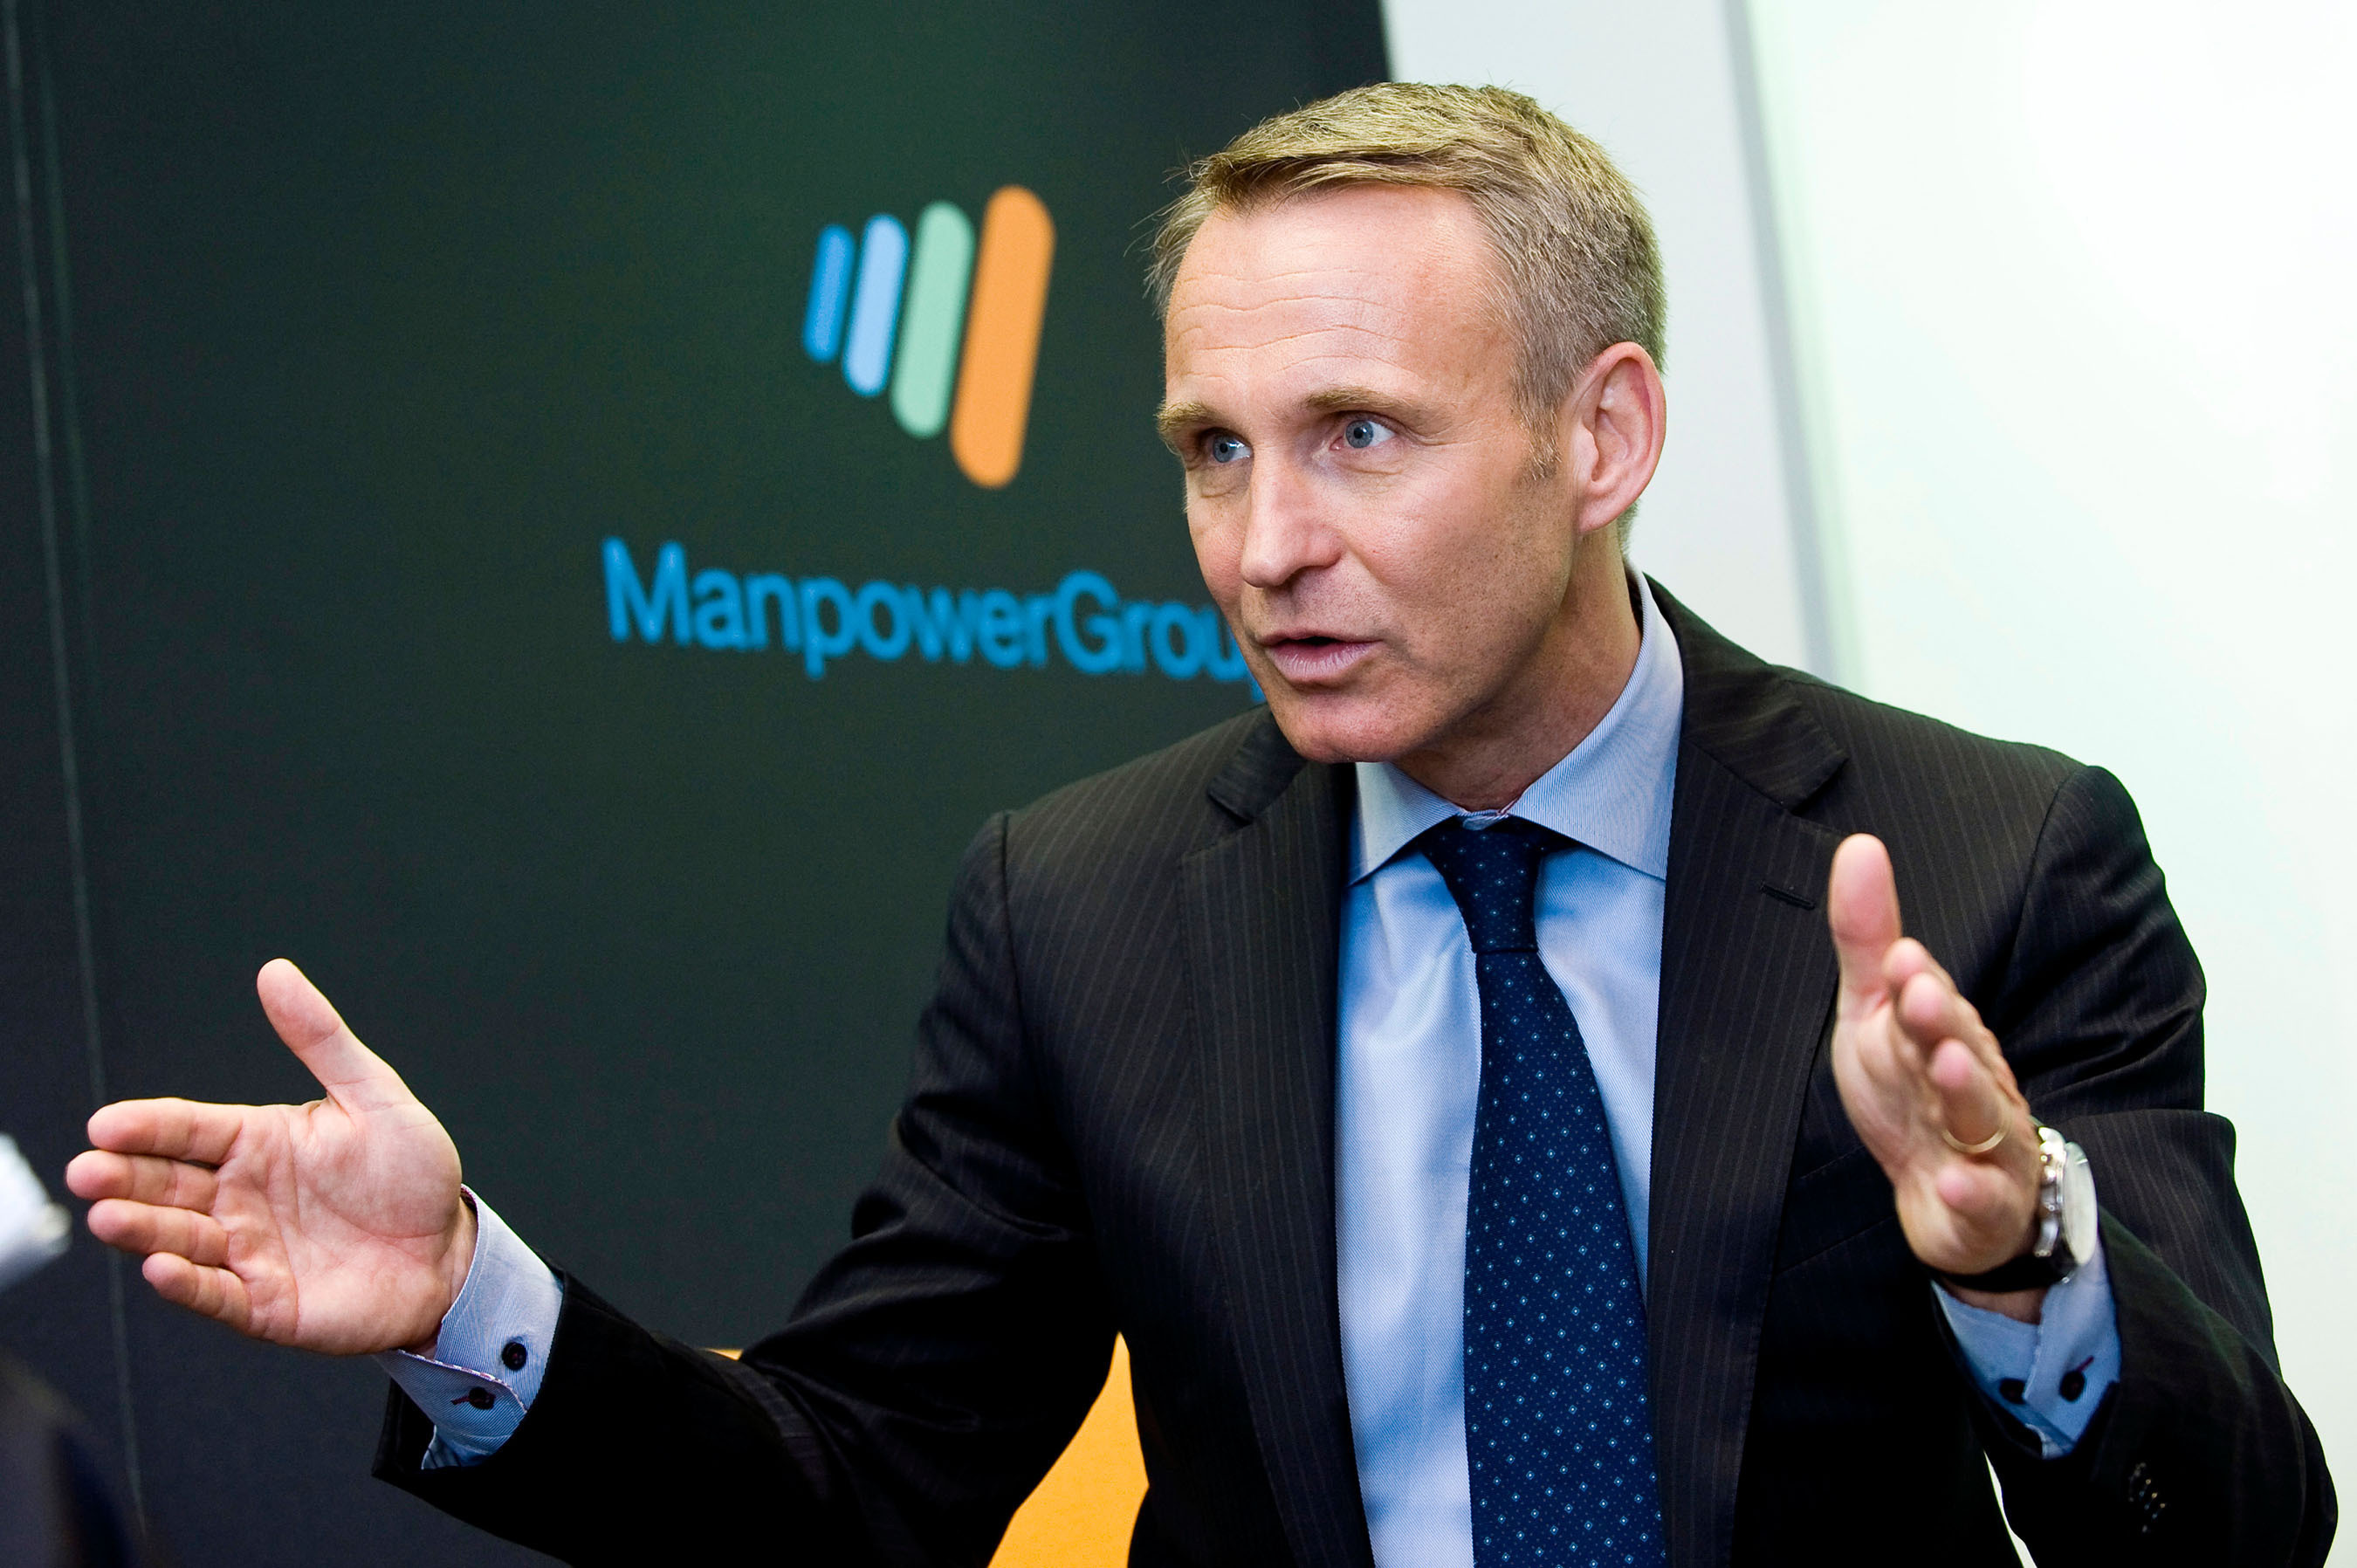 Jonas Prising, ManpowerGroup President, will join the world's business and political leaders at the World Economic Forum Annual Meeting in Davos, Switzerland, next week.  (PRNewsFoto/ManpowerGroup)